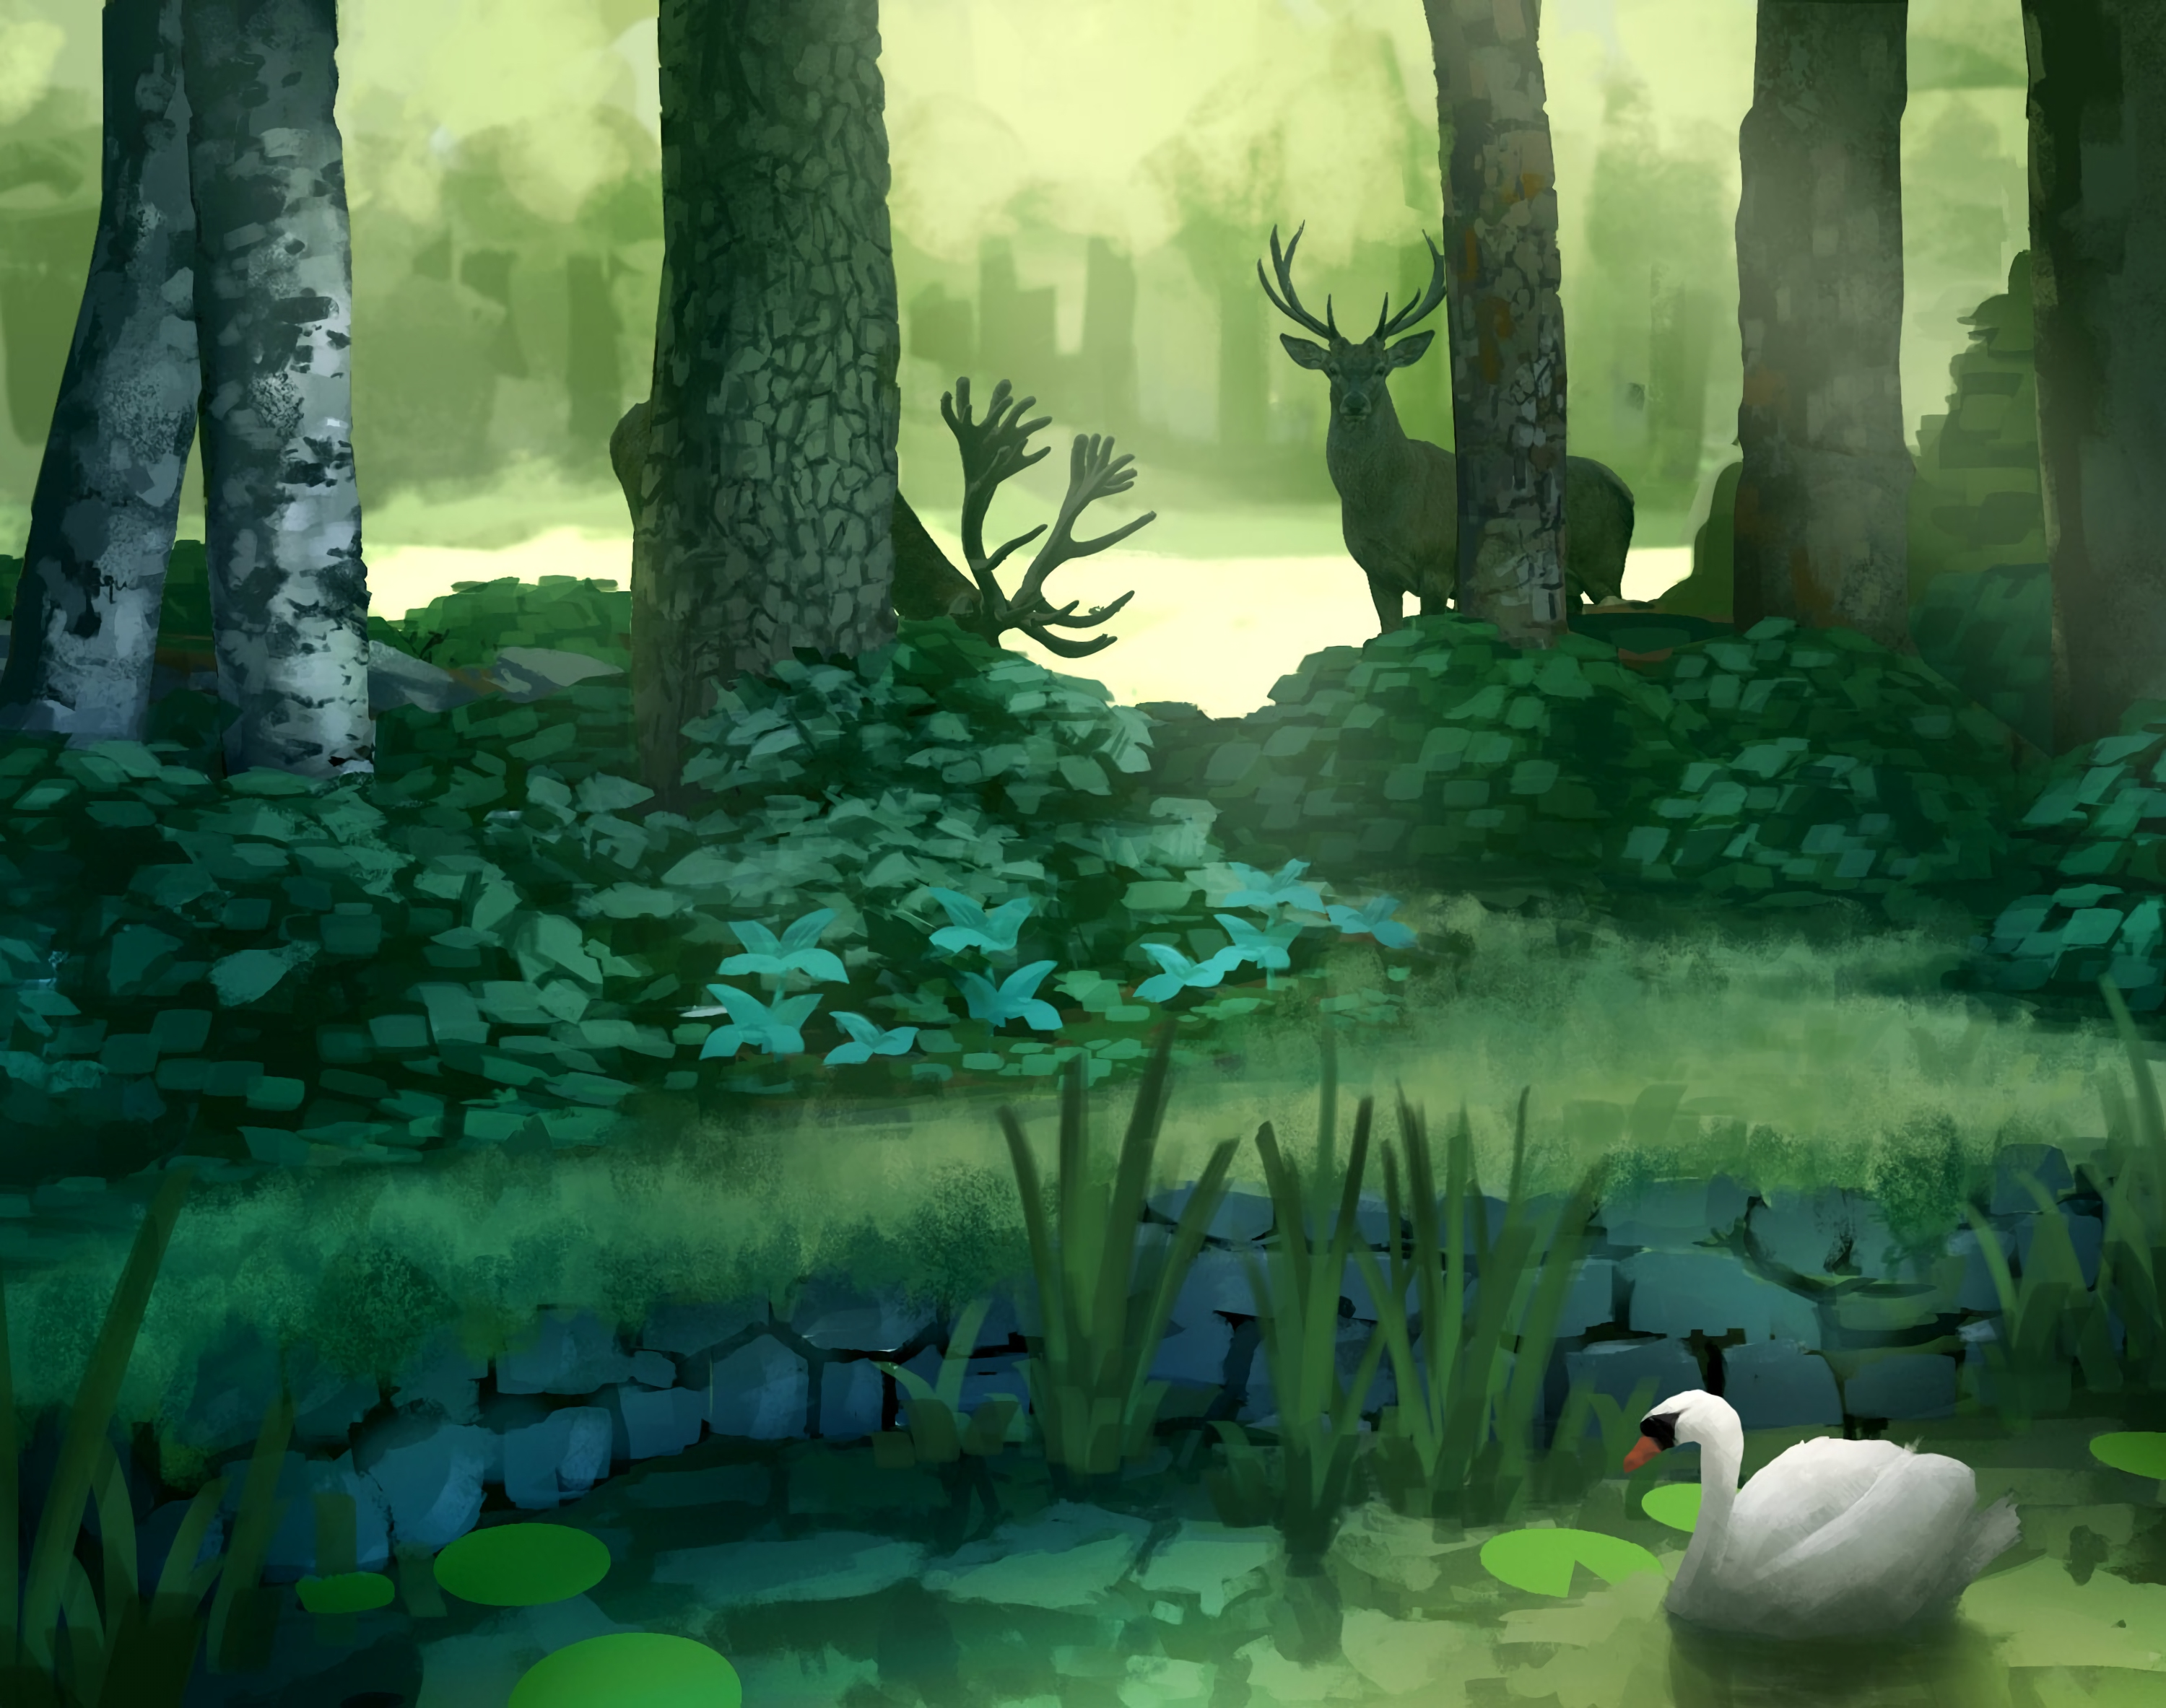 121746 free wallpaper 720x1520 for phone, download images Trees, Art, Deers, Forest, Swan, Pond 720x1520 for mobile